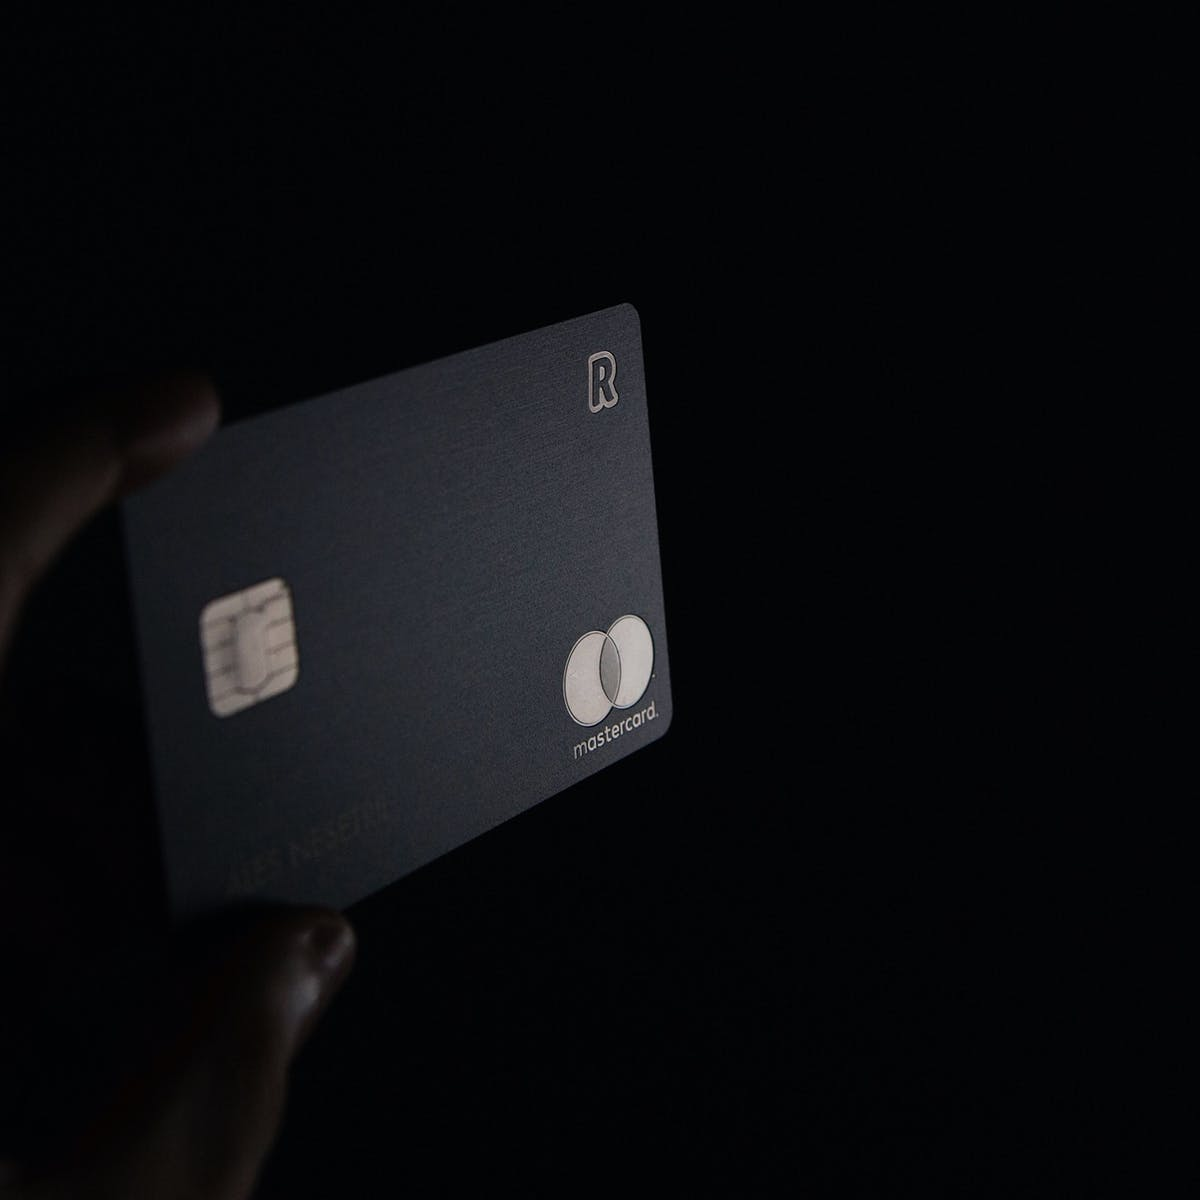 Best Credit Cards: Why the Same 2 Credit Cards Keep Topping Best-of Lists